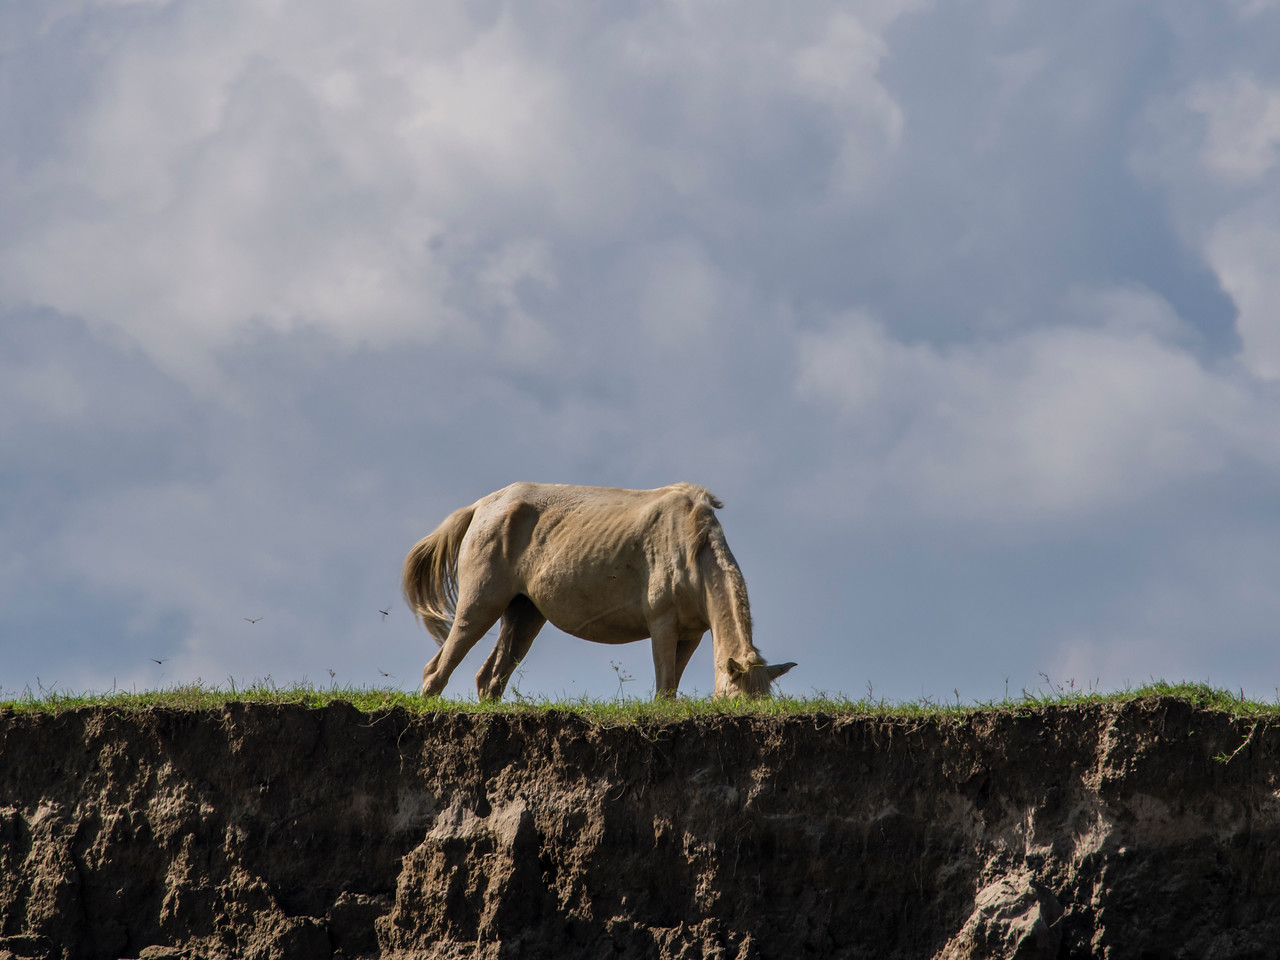 White horse grazing on the banks of the Chindwin River, Myanmar